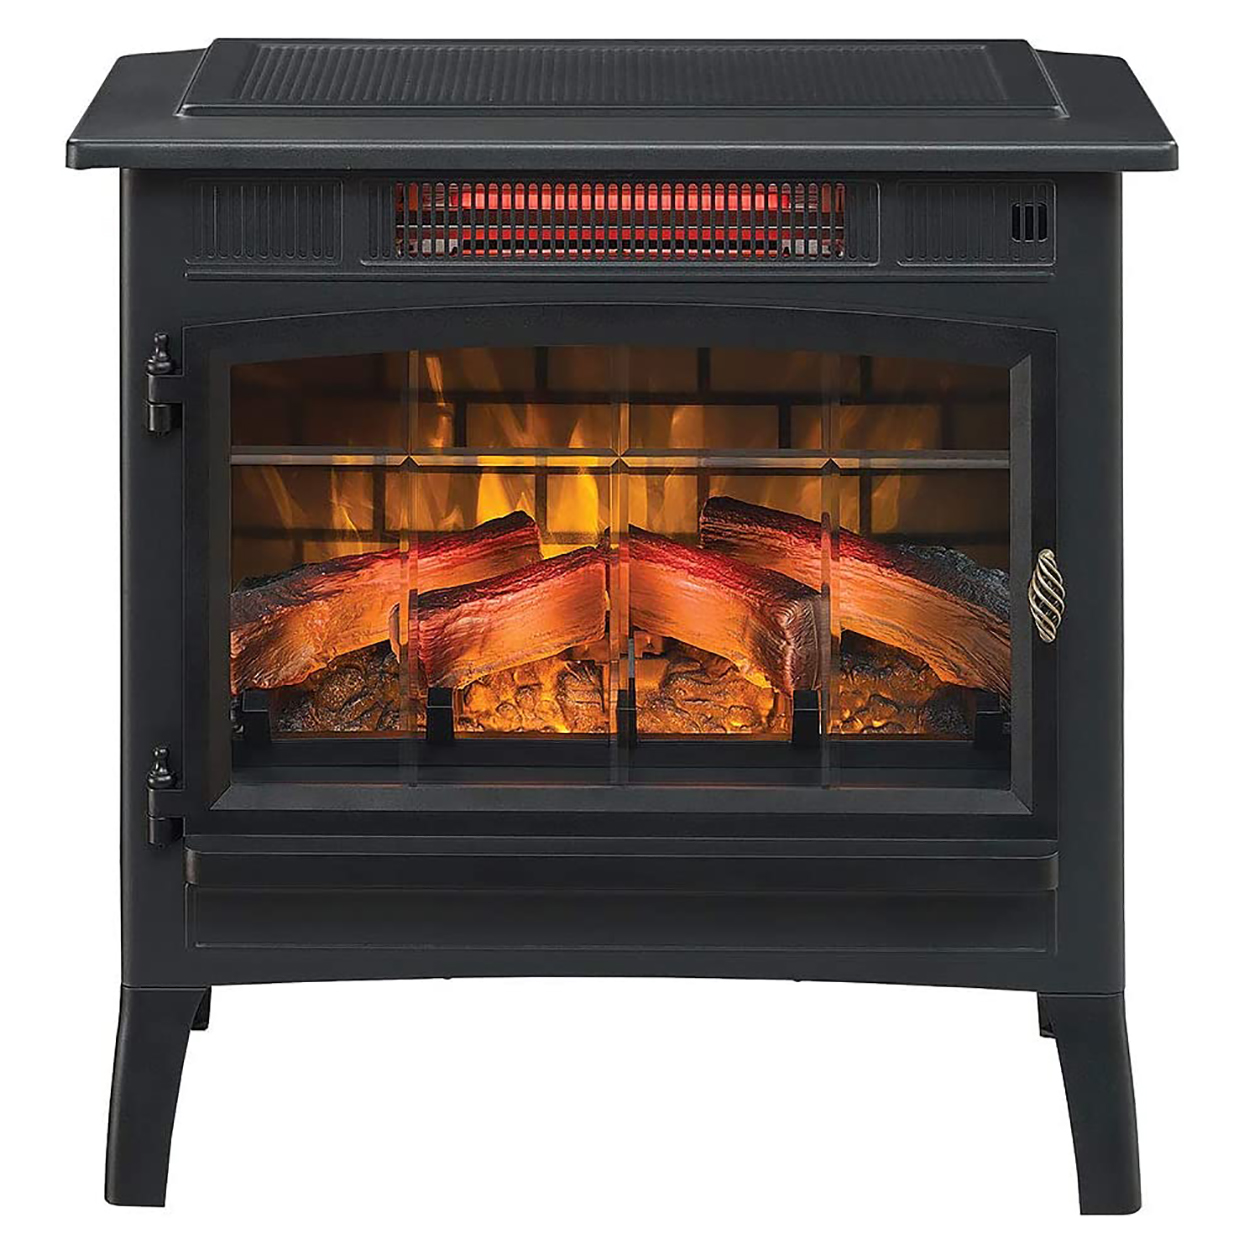 10 Best Electric Fireplaces In 2020 According To Reviews Better Homes Gardens